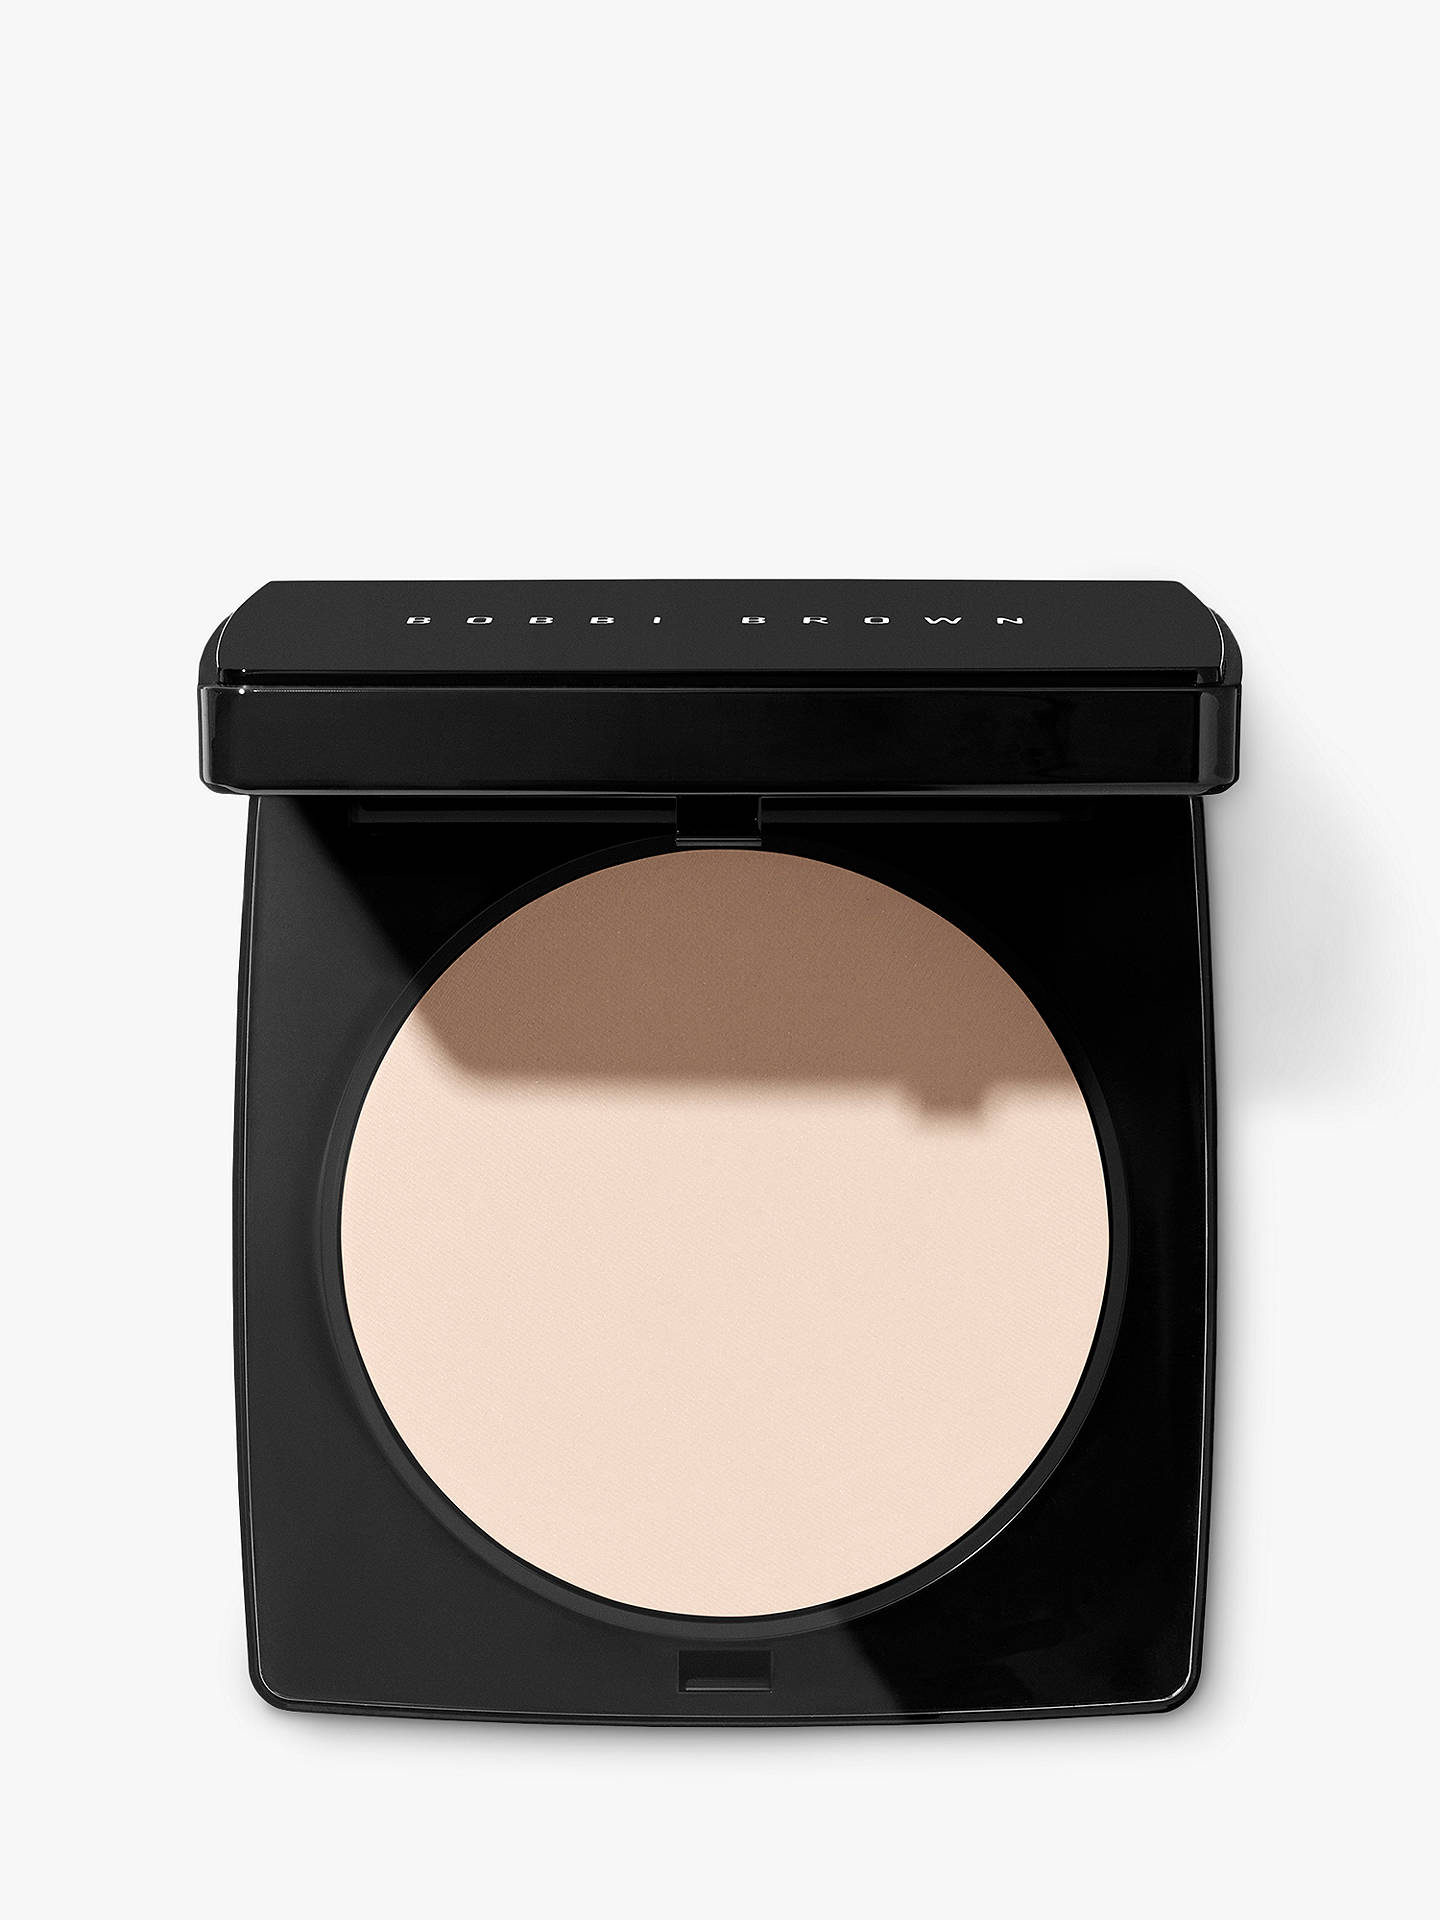 Buy Bobbi Brown Sheer Finish Pressed Powder, Soft Porcelain Online at johnlewis.com